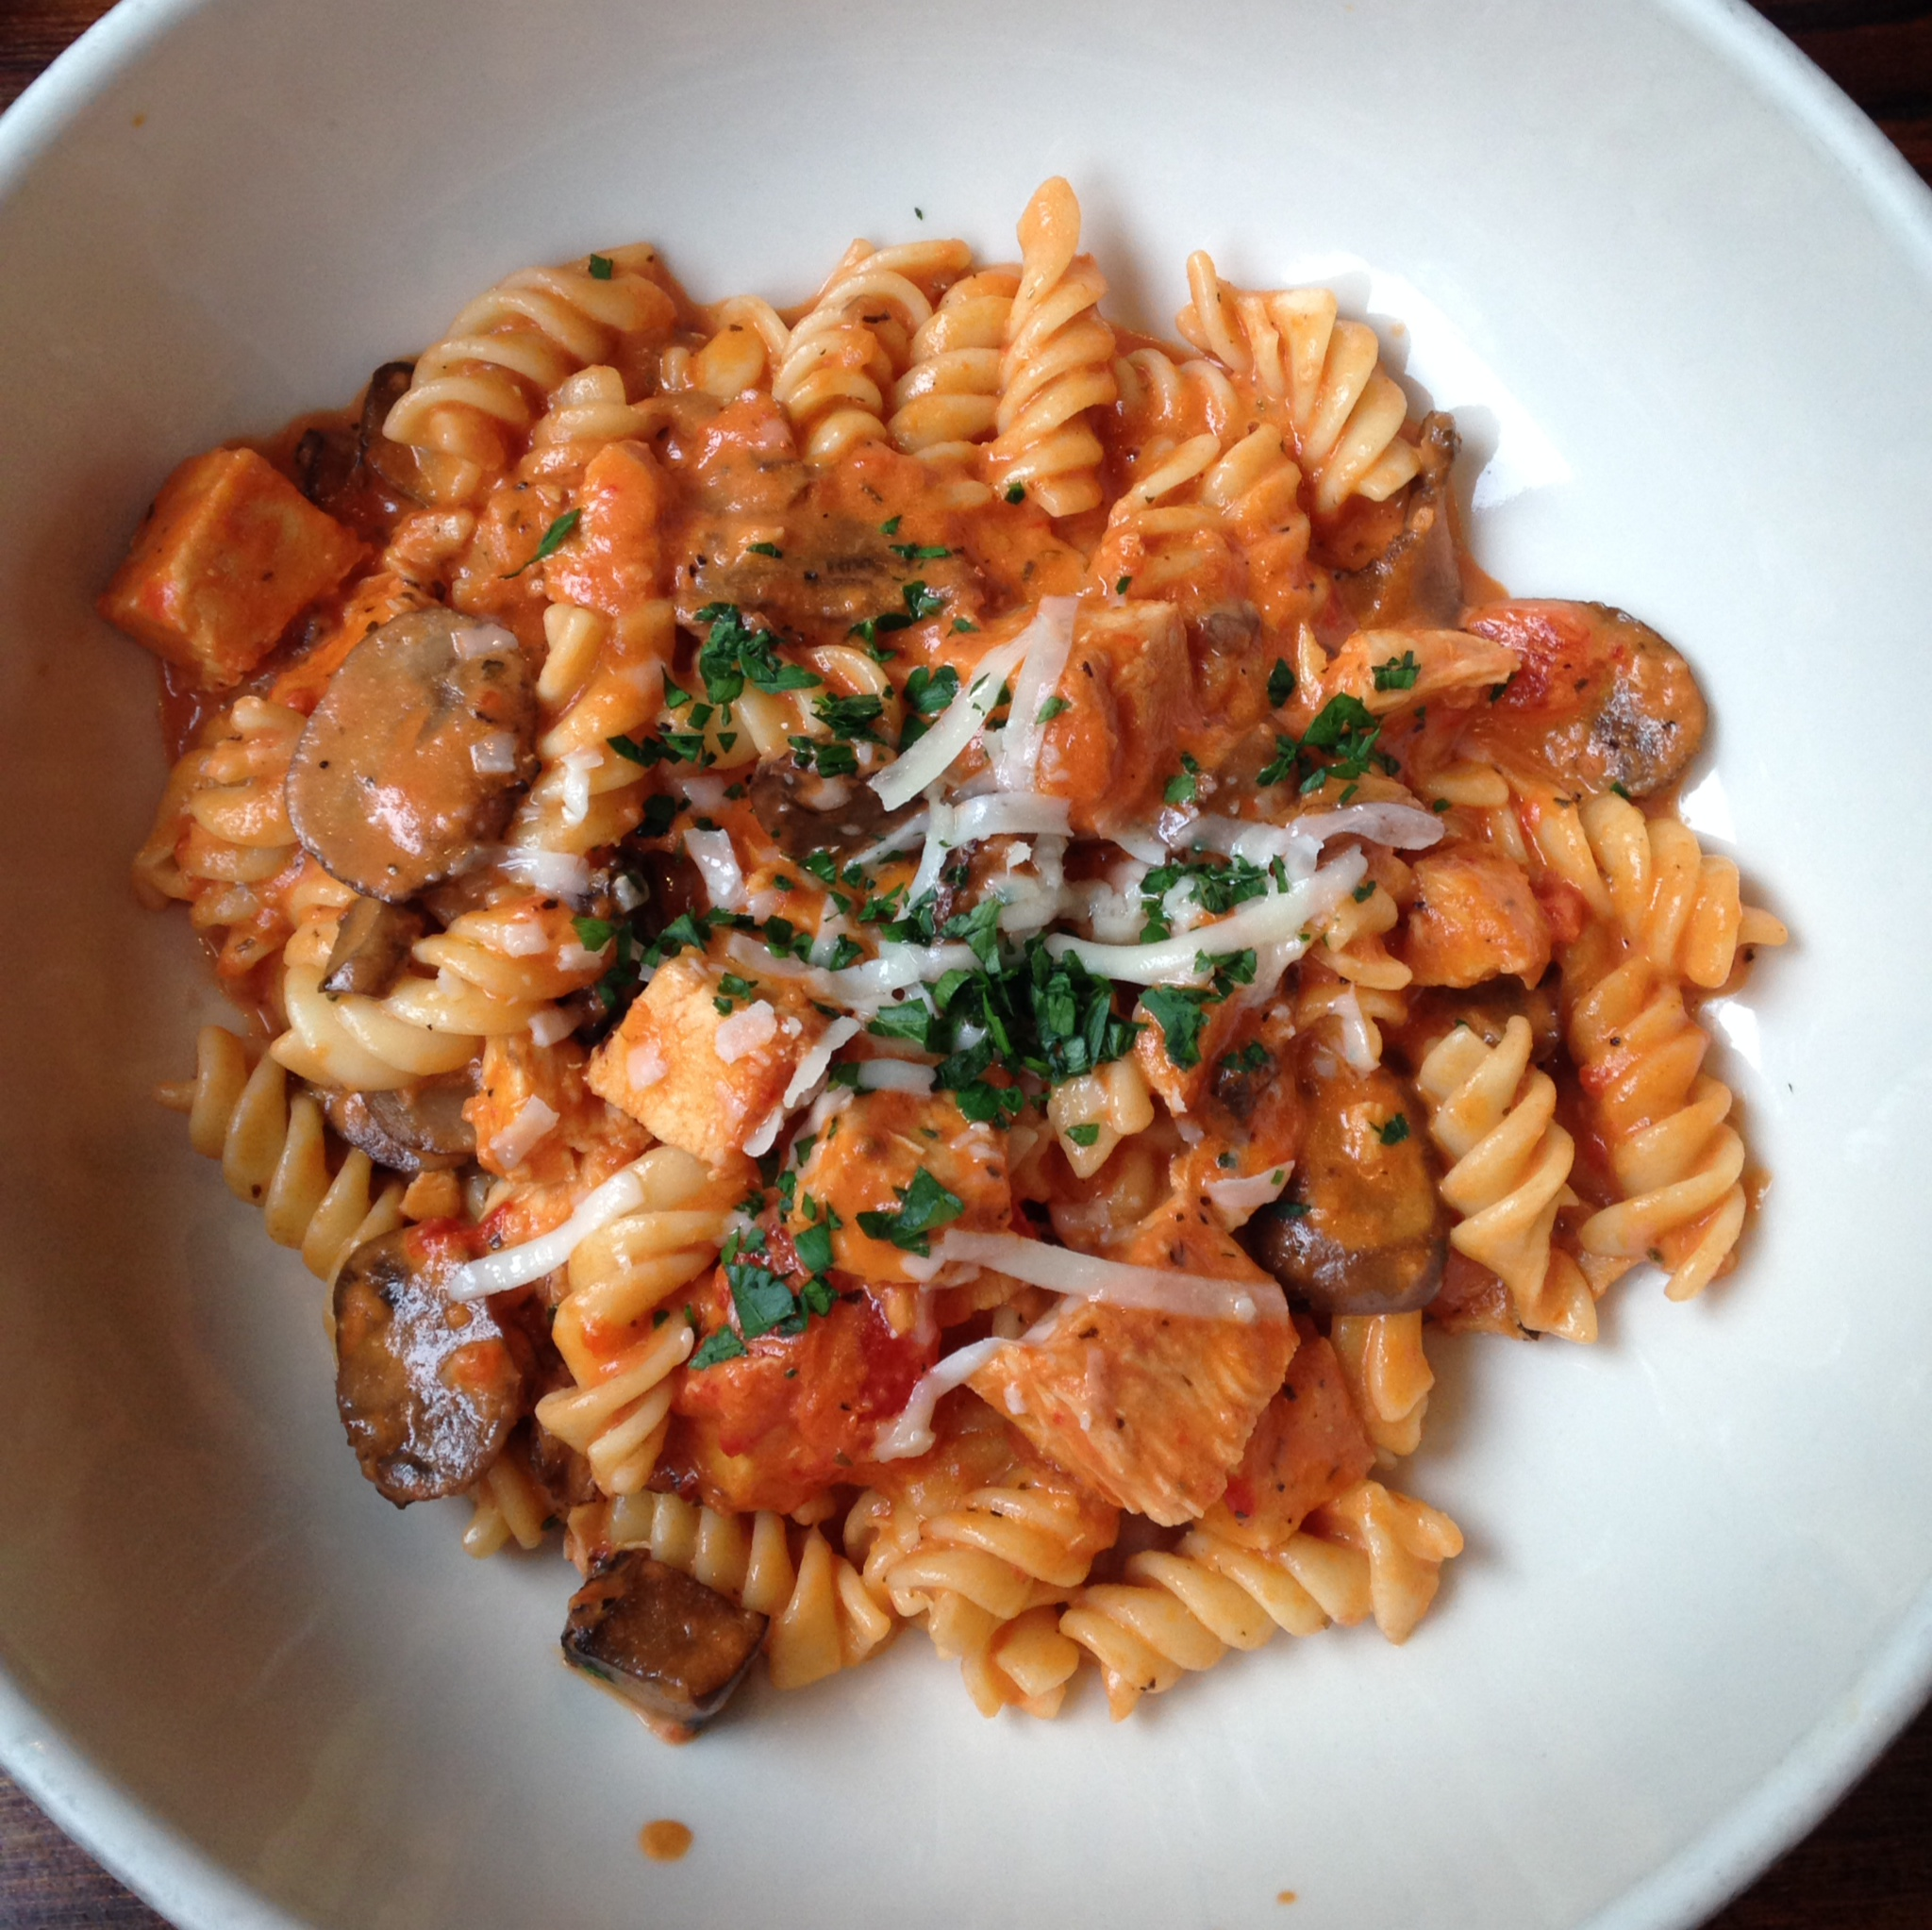 Tony's Pasta - Chattanooga, TN - Fusilli - grilled chicken, wild mushrooms, roasted red pepper cream sauce.